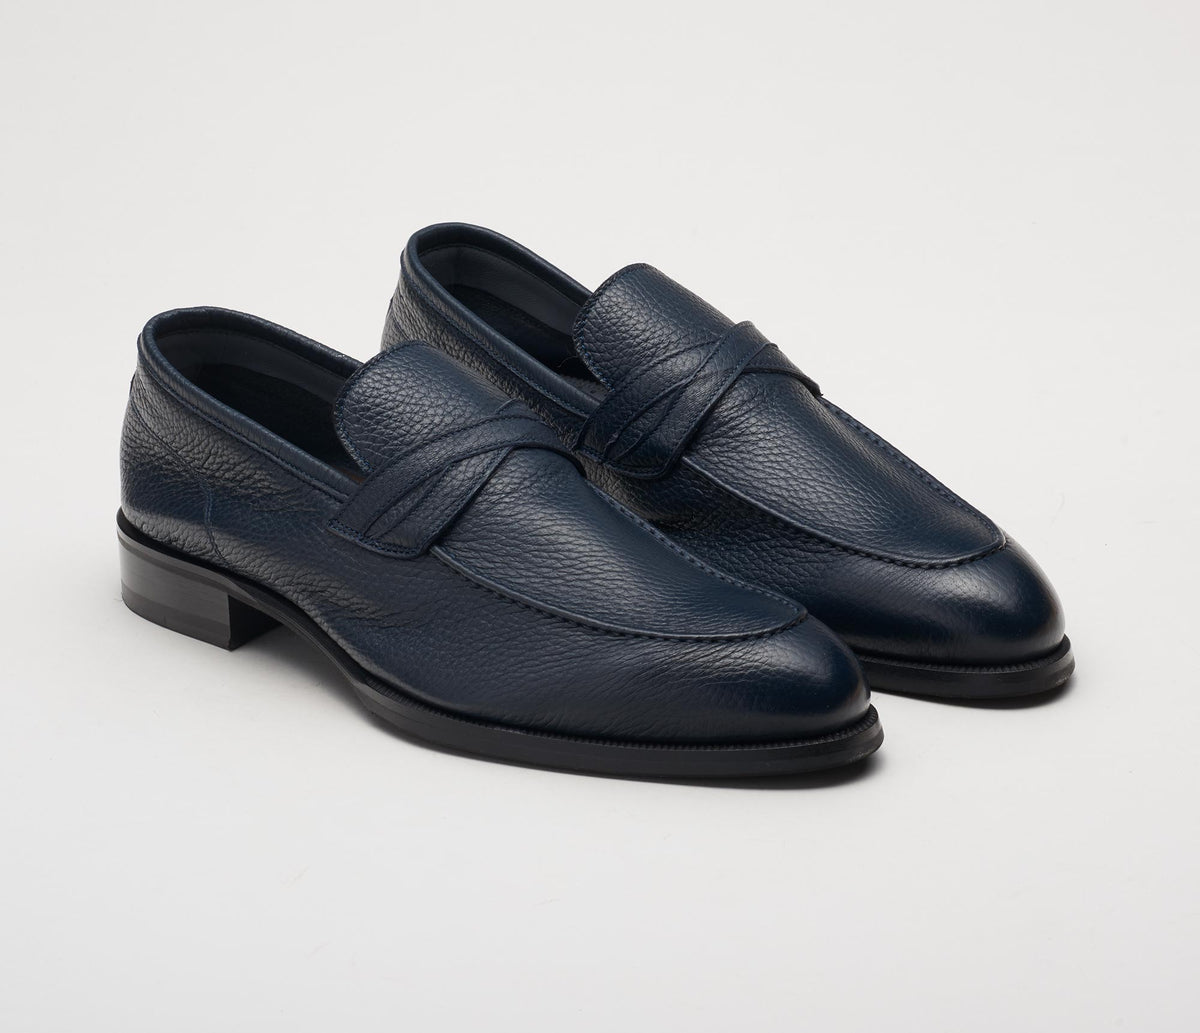 Men's blue loafer in soft pebble grain leather, made in Italy, handmade